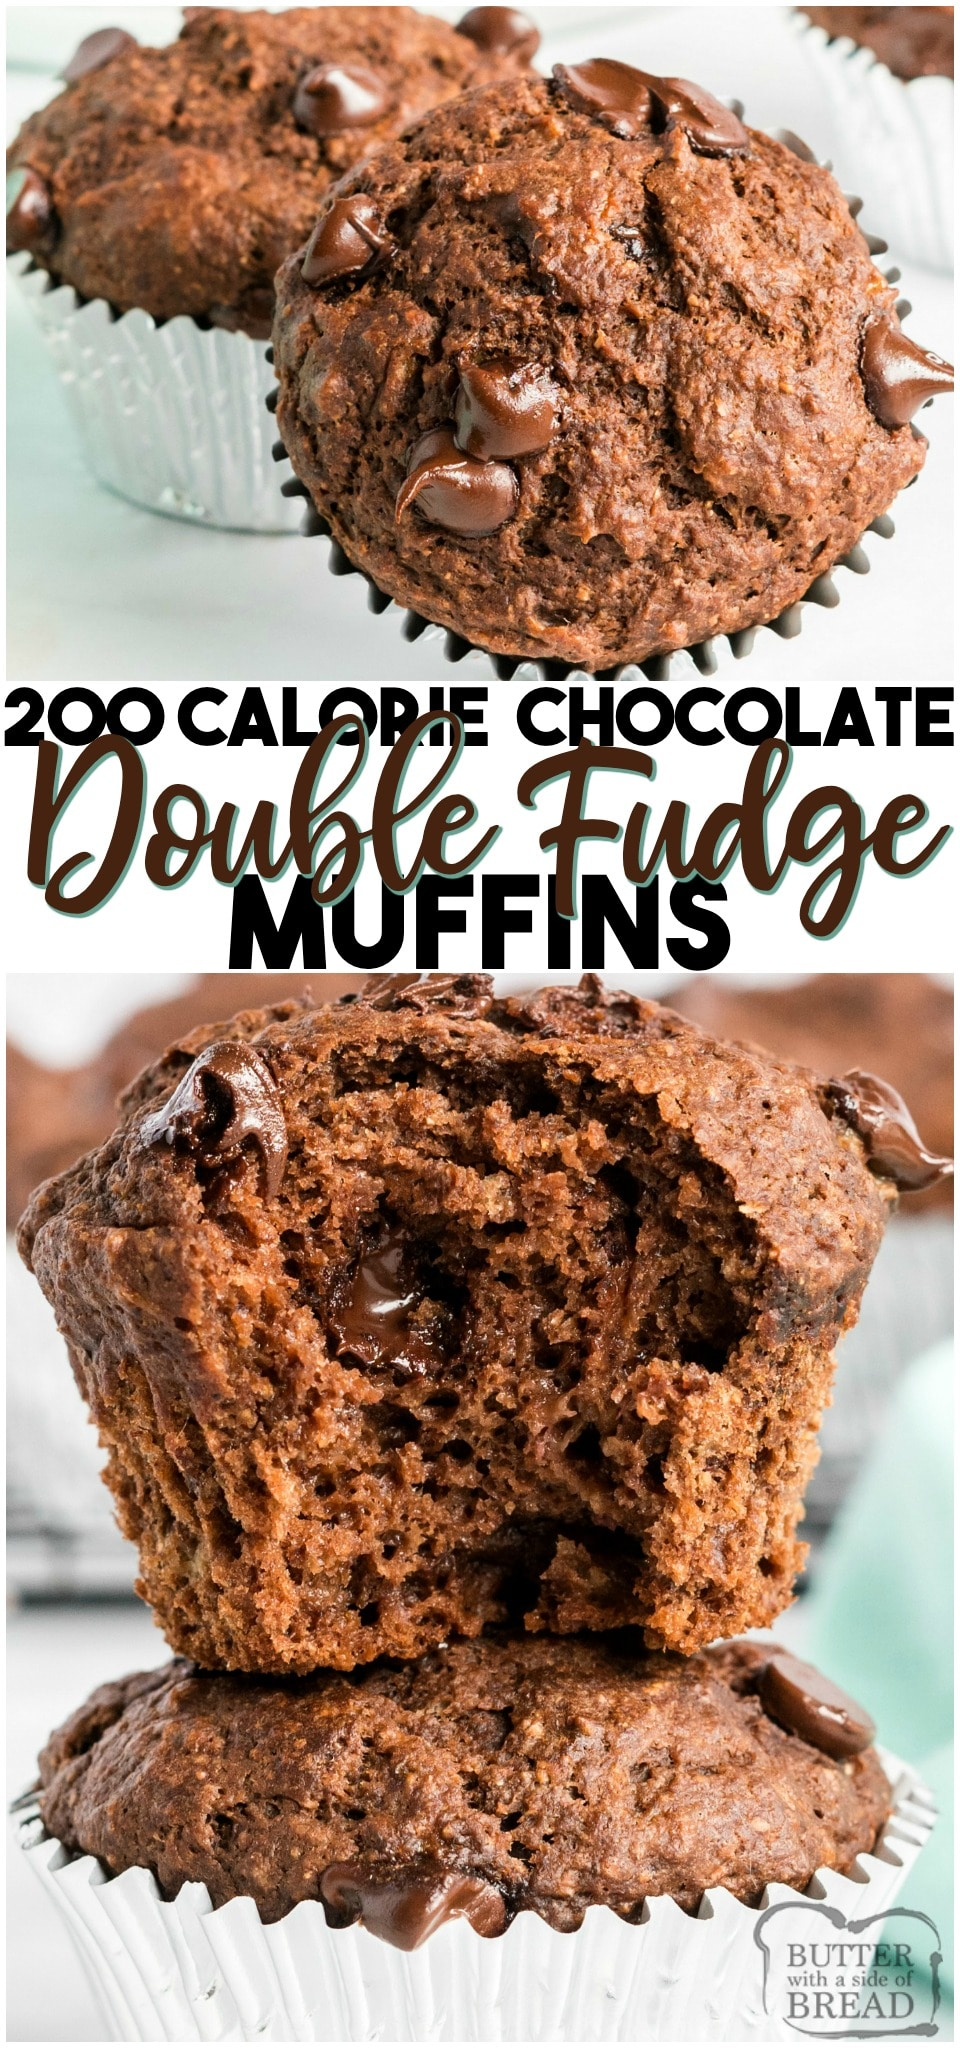 200 Calorie Double Fudge muffins made with applesauce, bananas, whole wheat flour, cocoa powder & chocolate chips! Perfect low-cal #muffin recipe for #chocolate lovers!#muffins #lowcal #lowcalorie #baking #breakfast #chocolatechips #recipe from BUTTER WITH A SIDE OF BREAD